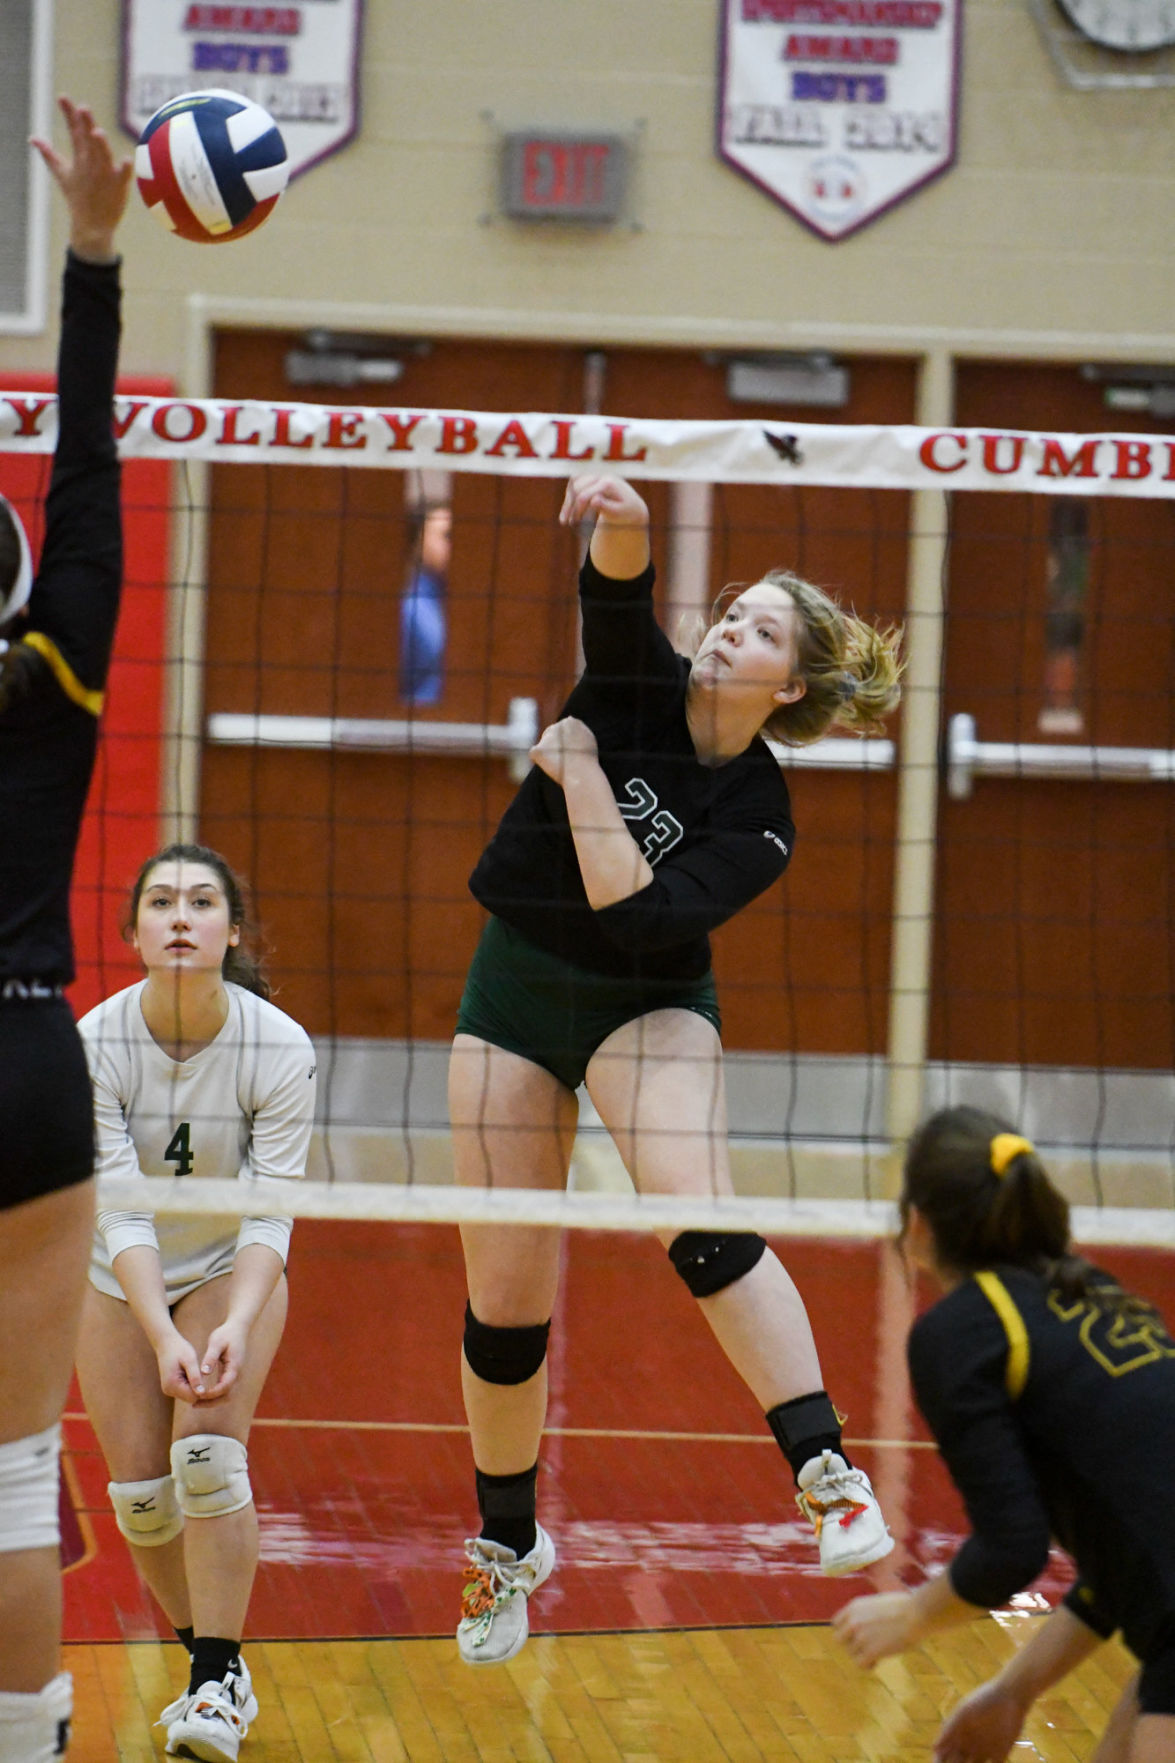 Volleyball preview photo 2